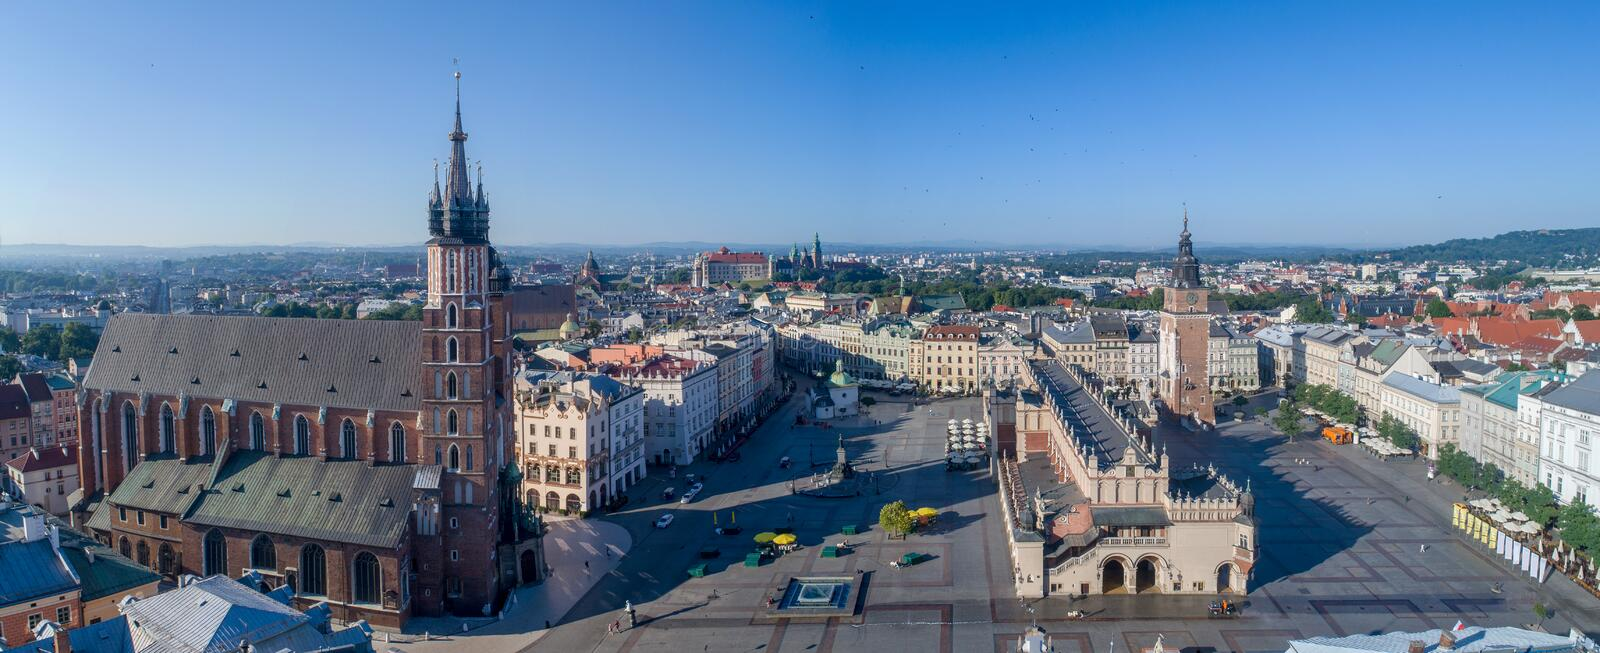 Krakow, Poland. Old city wide panorama with all main monuments royalty free stock photo